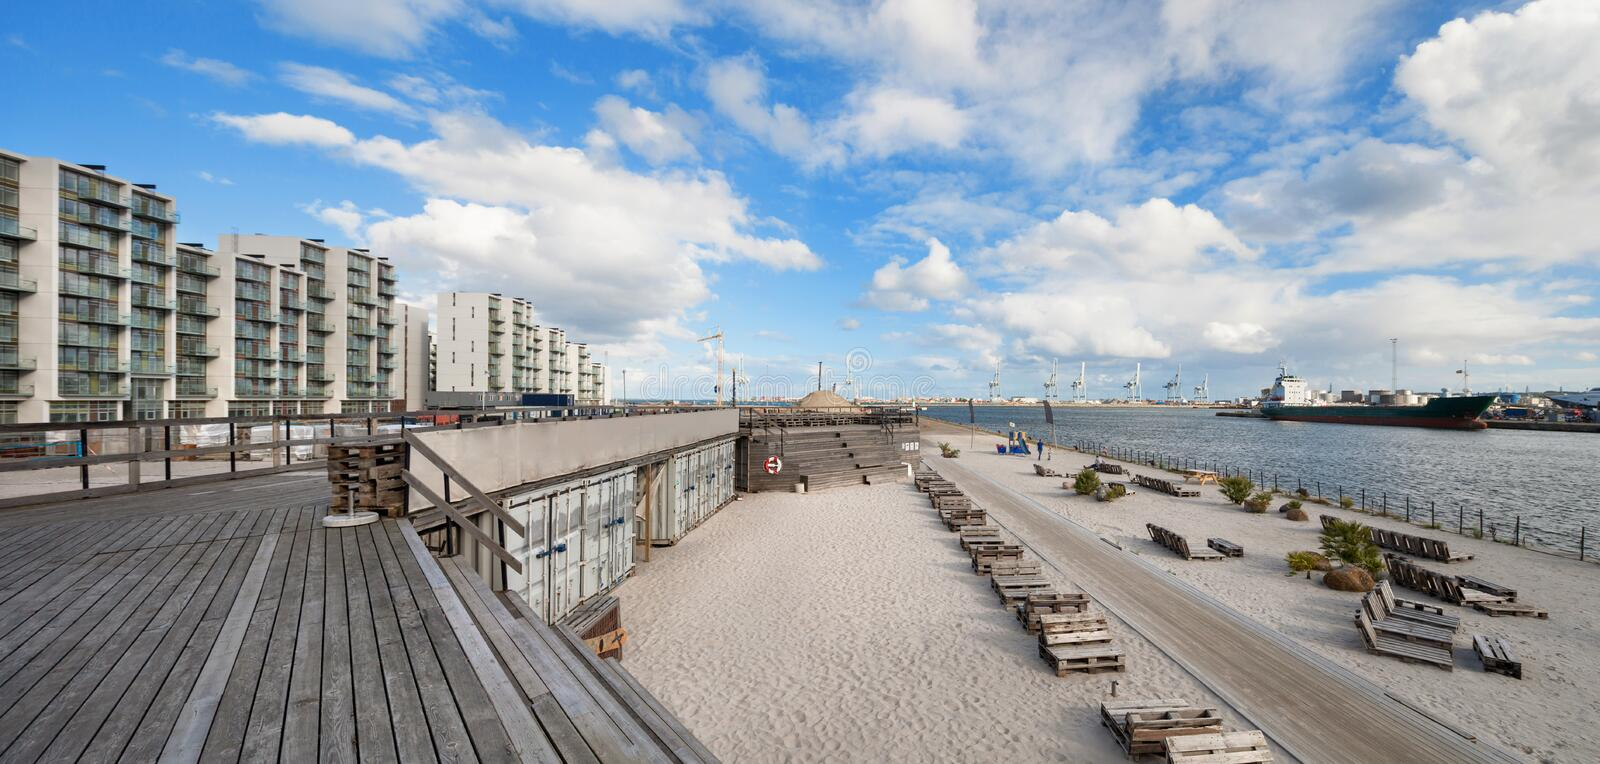 Beach at Aarhus in Denmark. Harbor in the background royalty free stock images